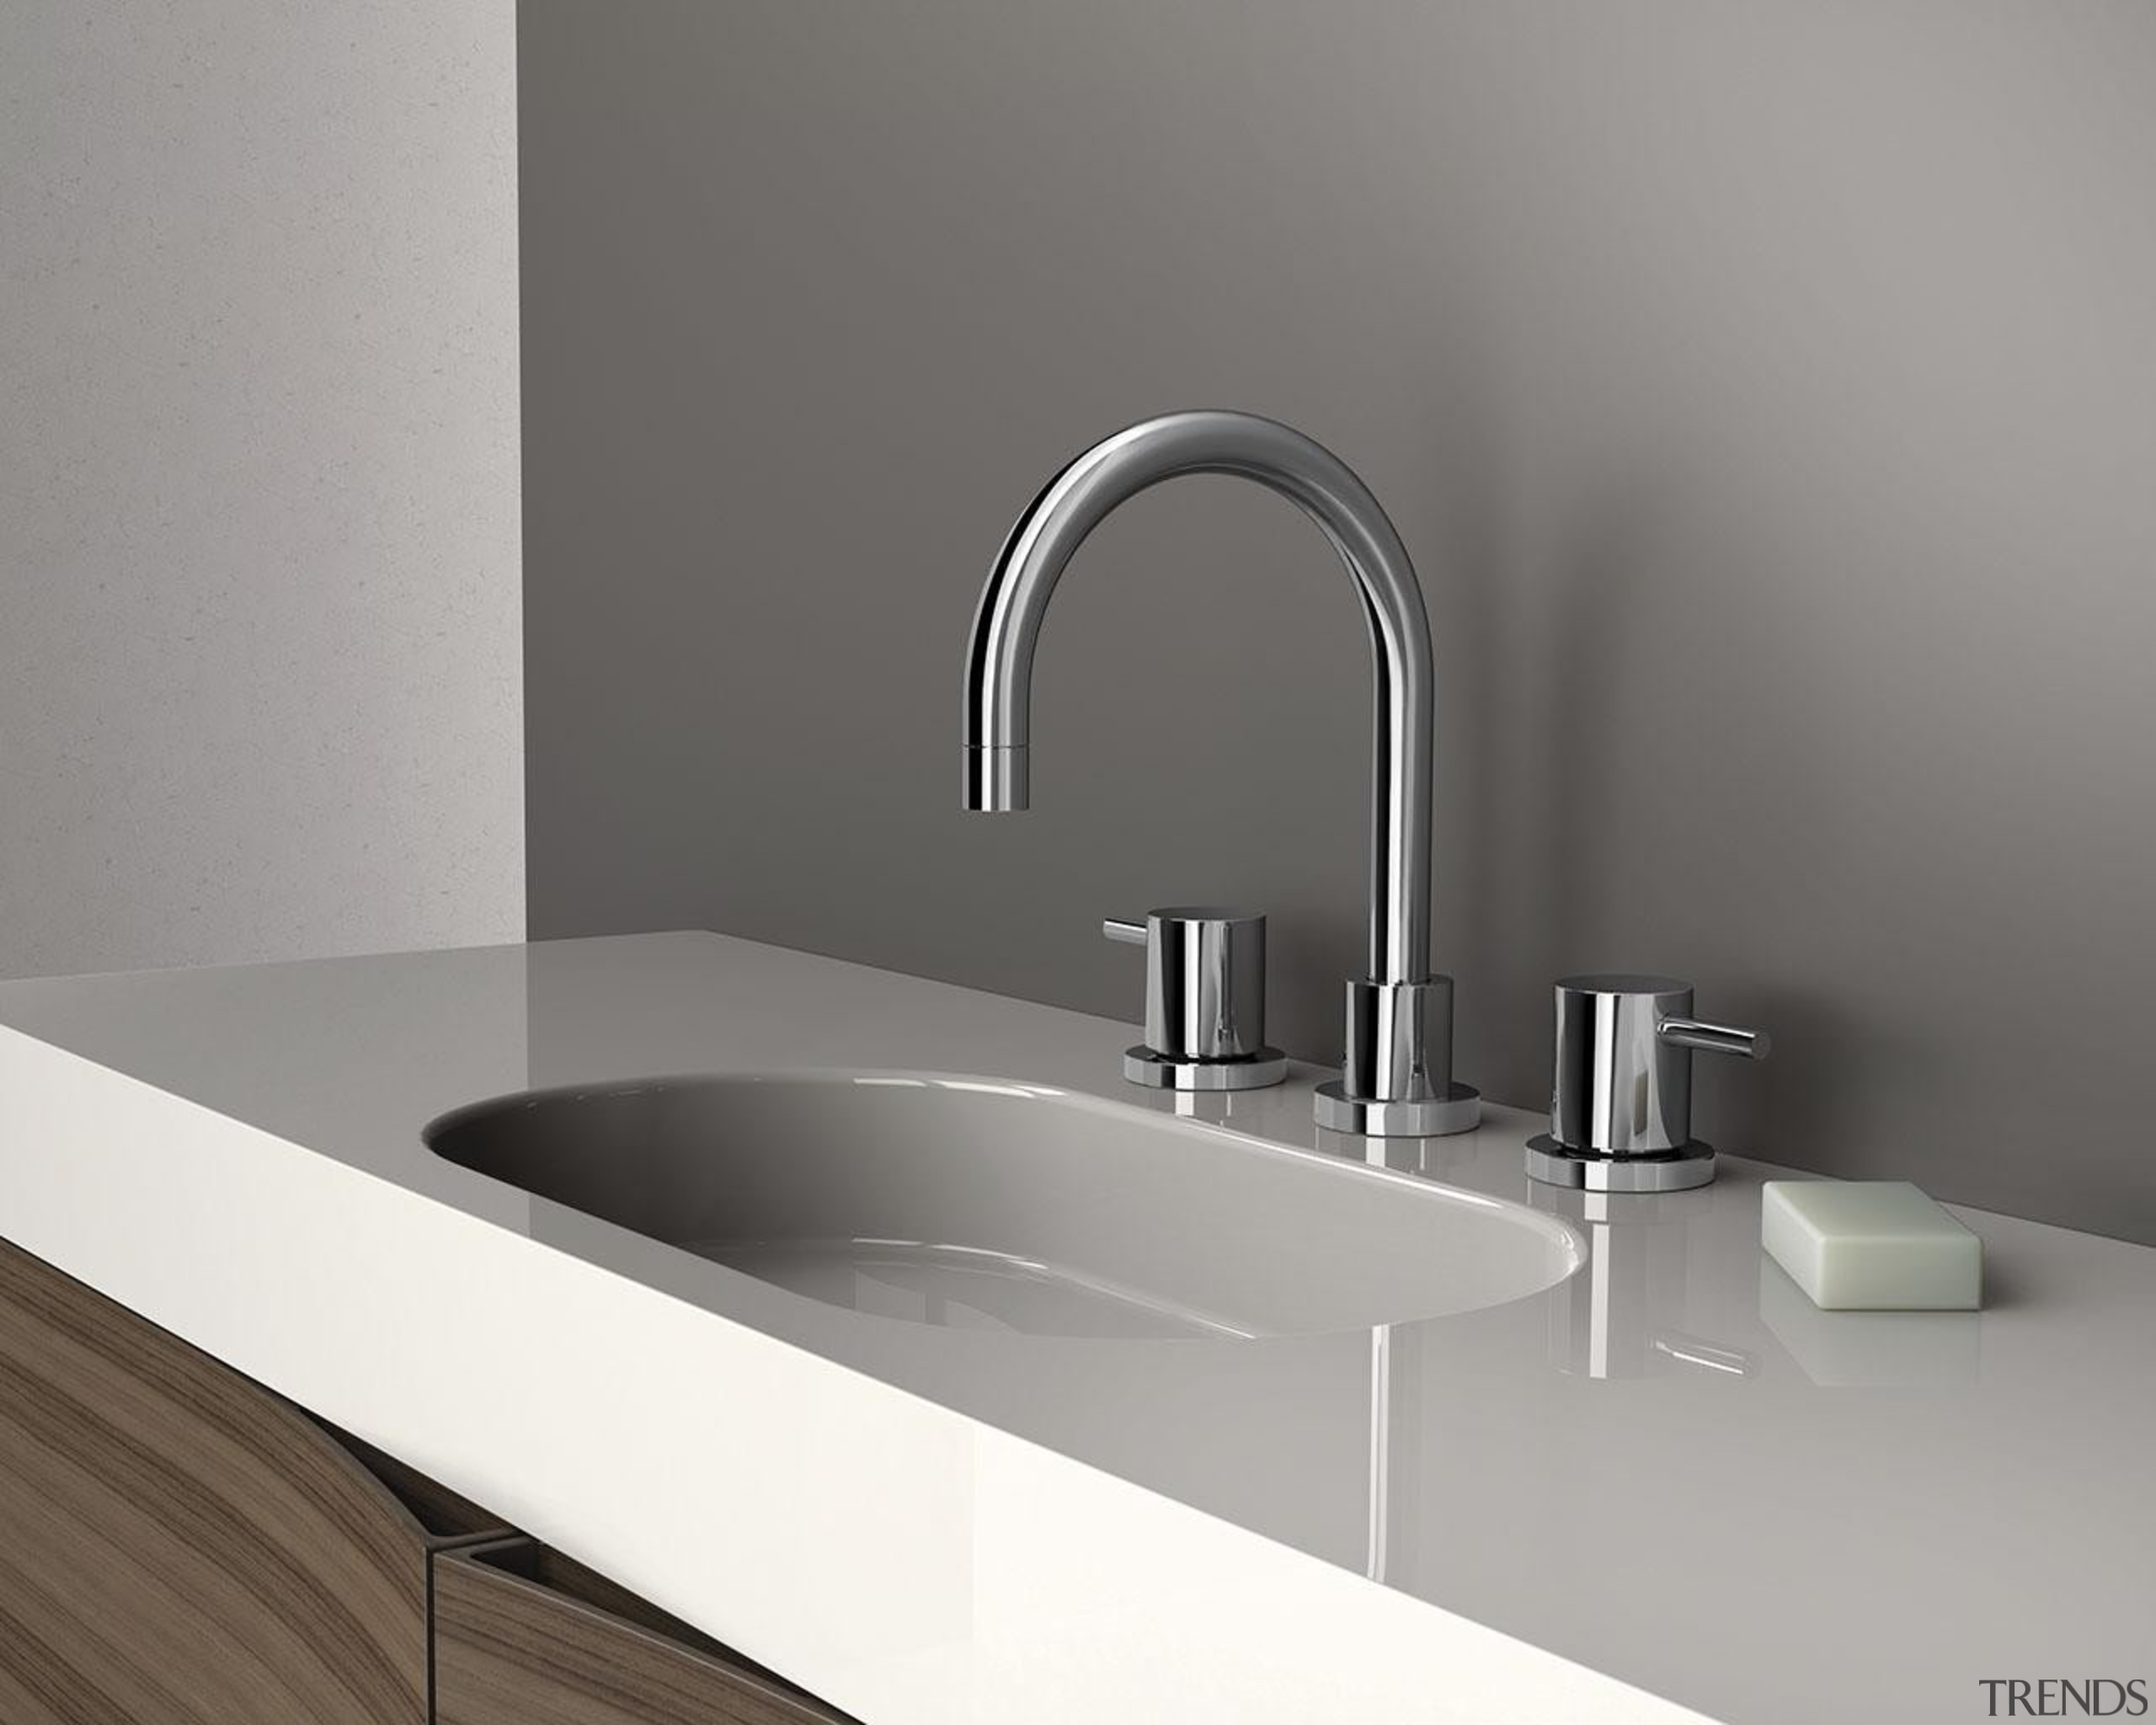 Vivid Pin Lever is an ideal tap ware angle, bathroom, bathroom sink, plumbing fixture, product design, sink, tap, gray